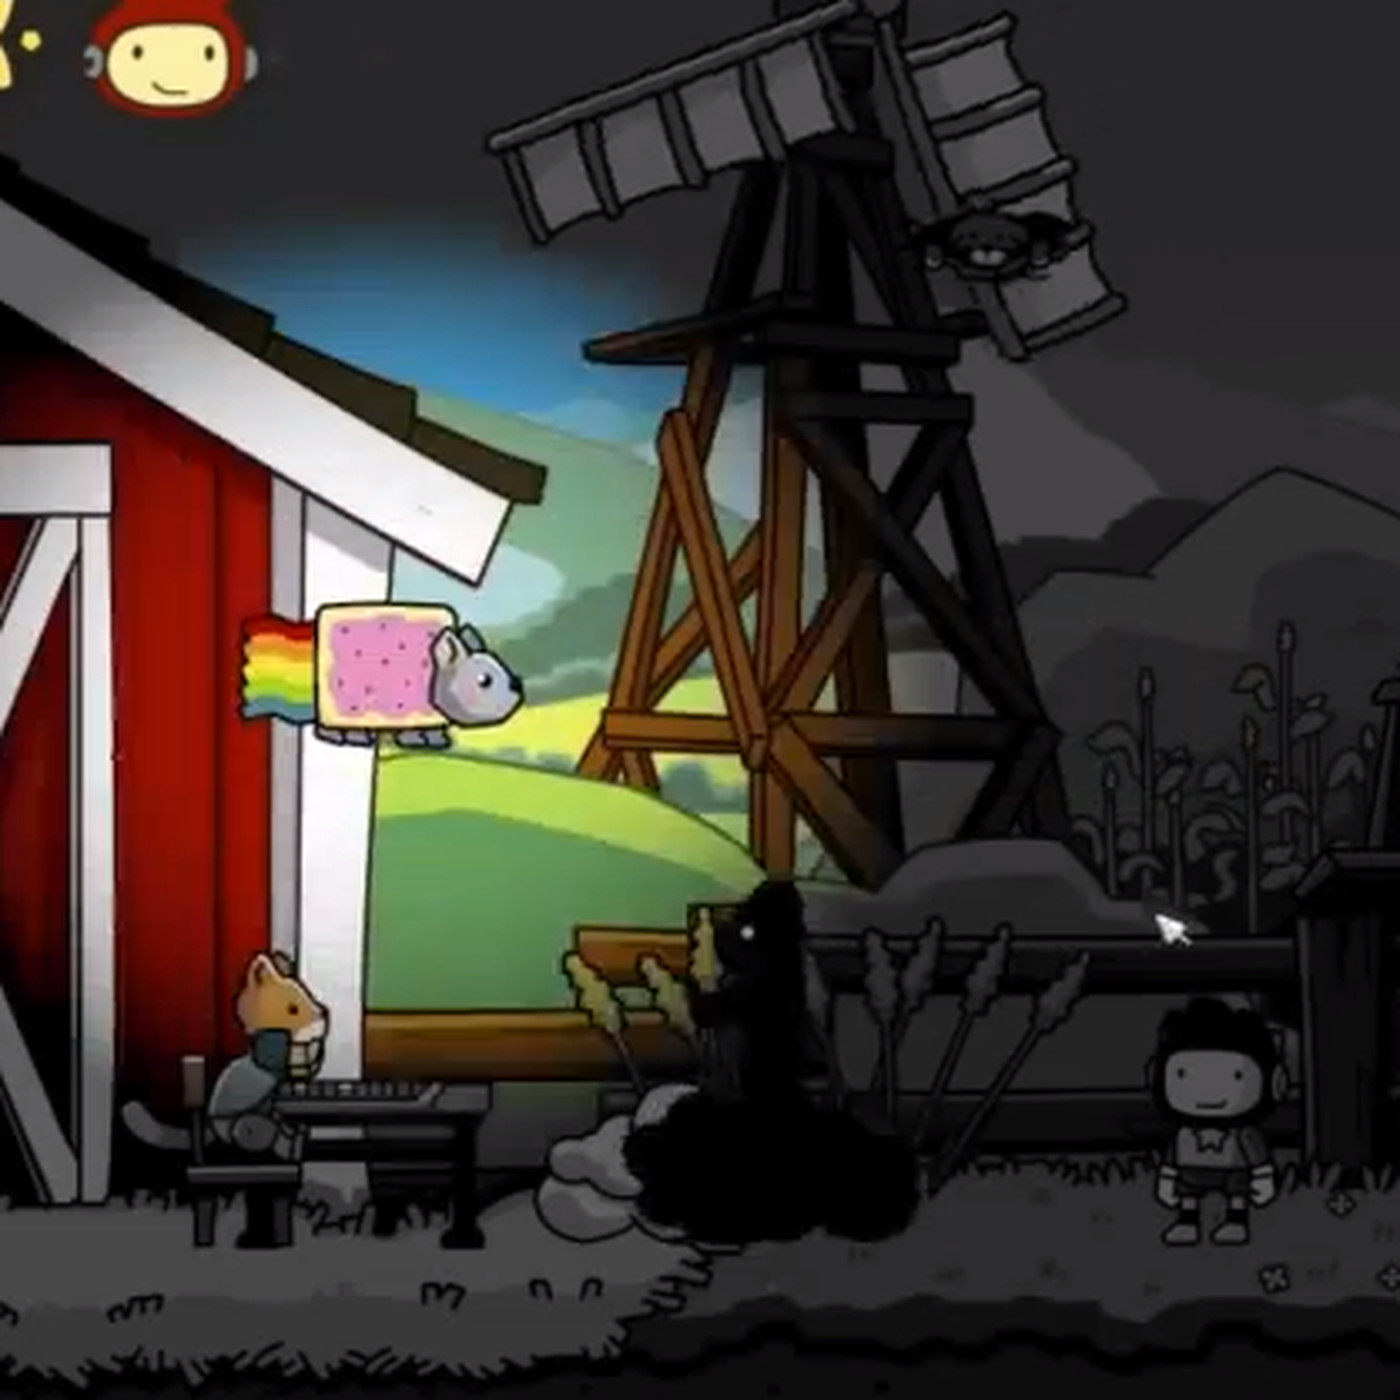 Nyan Cat And Keyboard Cat Creators Sue Scribblenauts Studio For